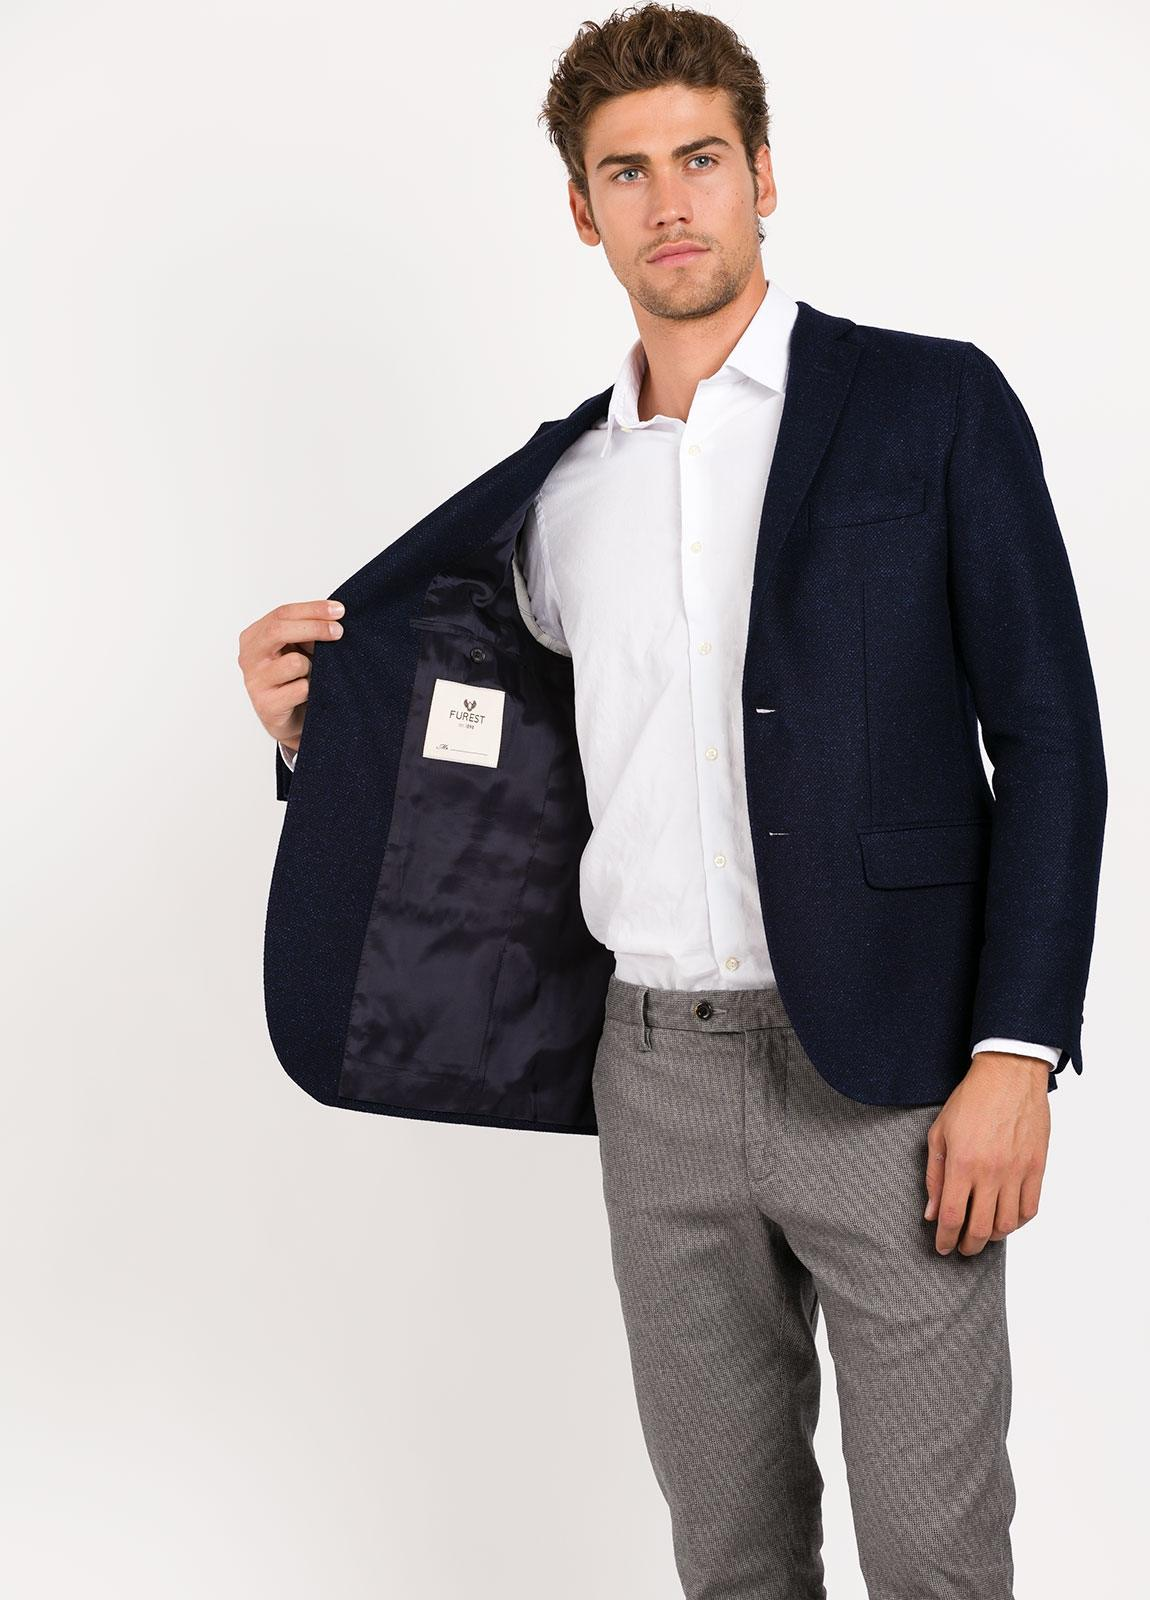 Americana SOFT JACKET Slim Fit, tejido Bottoli textura color azul marino, Lana. - Ítem3